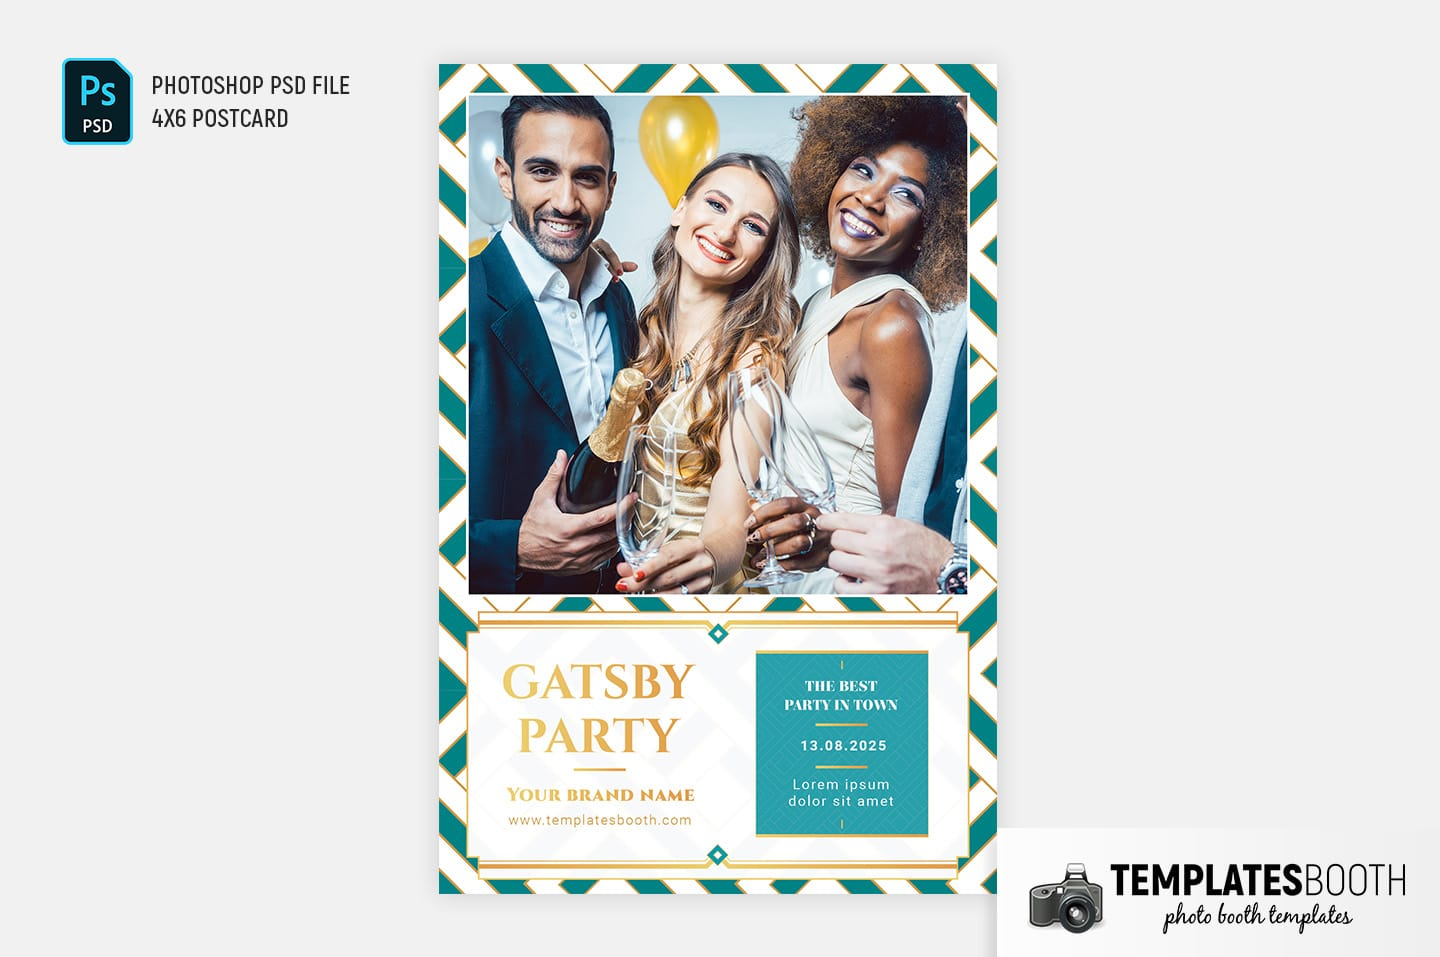 Turquoise Glamour Photo Booth Template (4x6 Single Image)